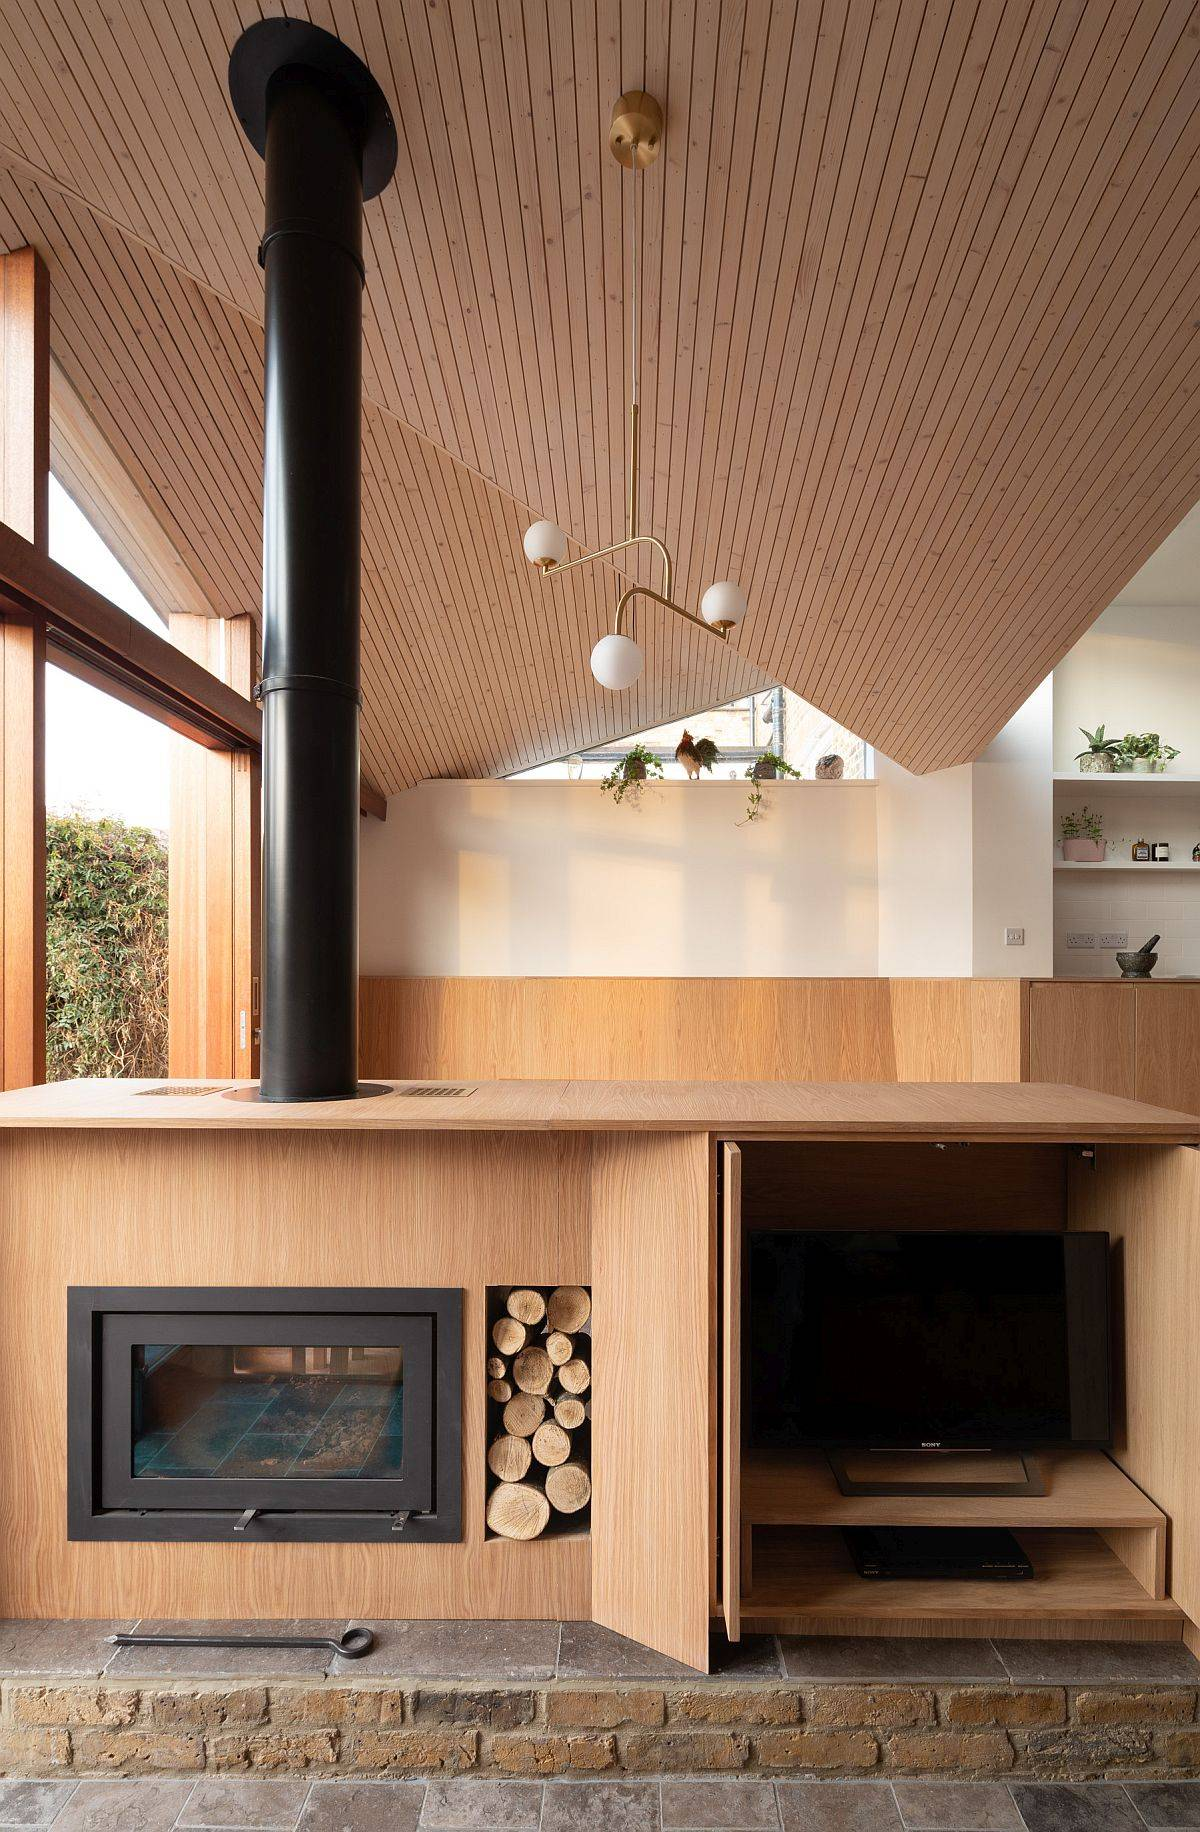 Wooden-cabinet-next-to-the-fireplace-opens-up-to-reveal-the-TV-10163